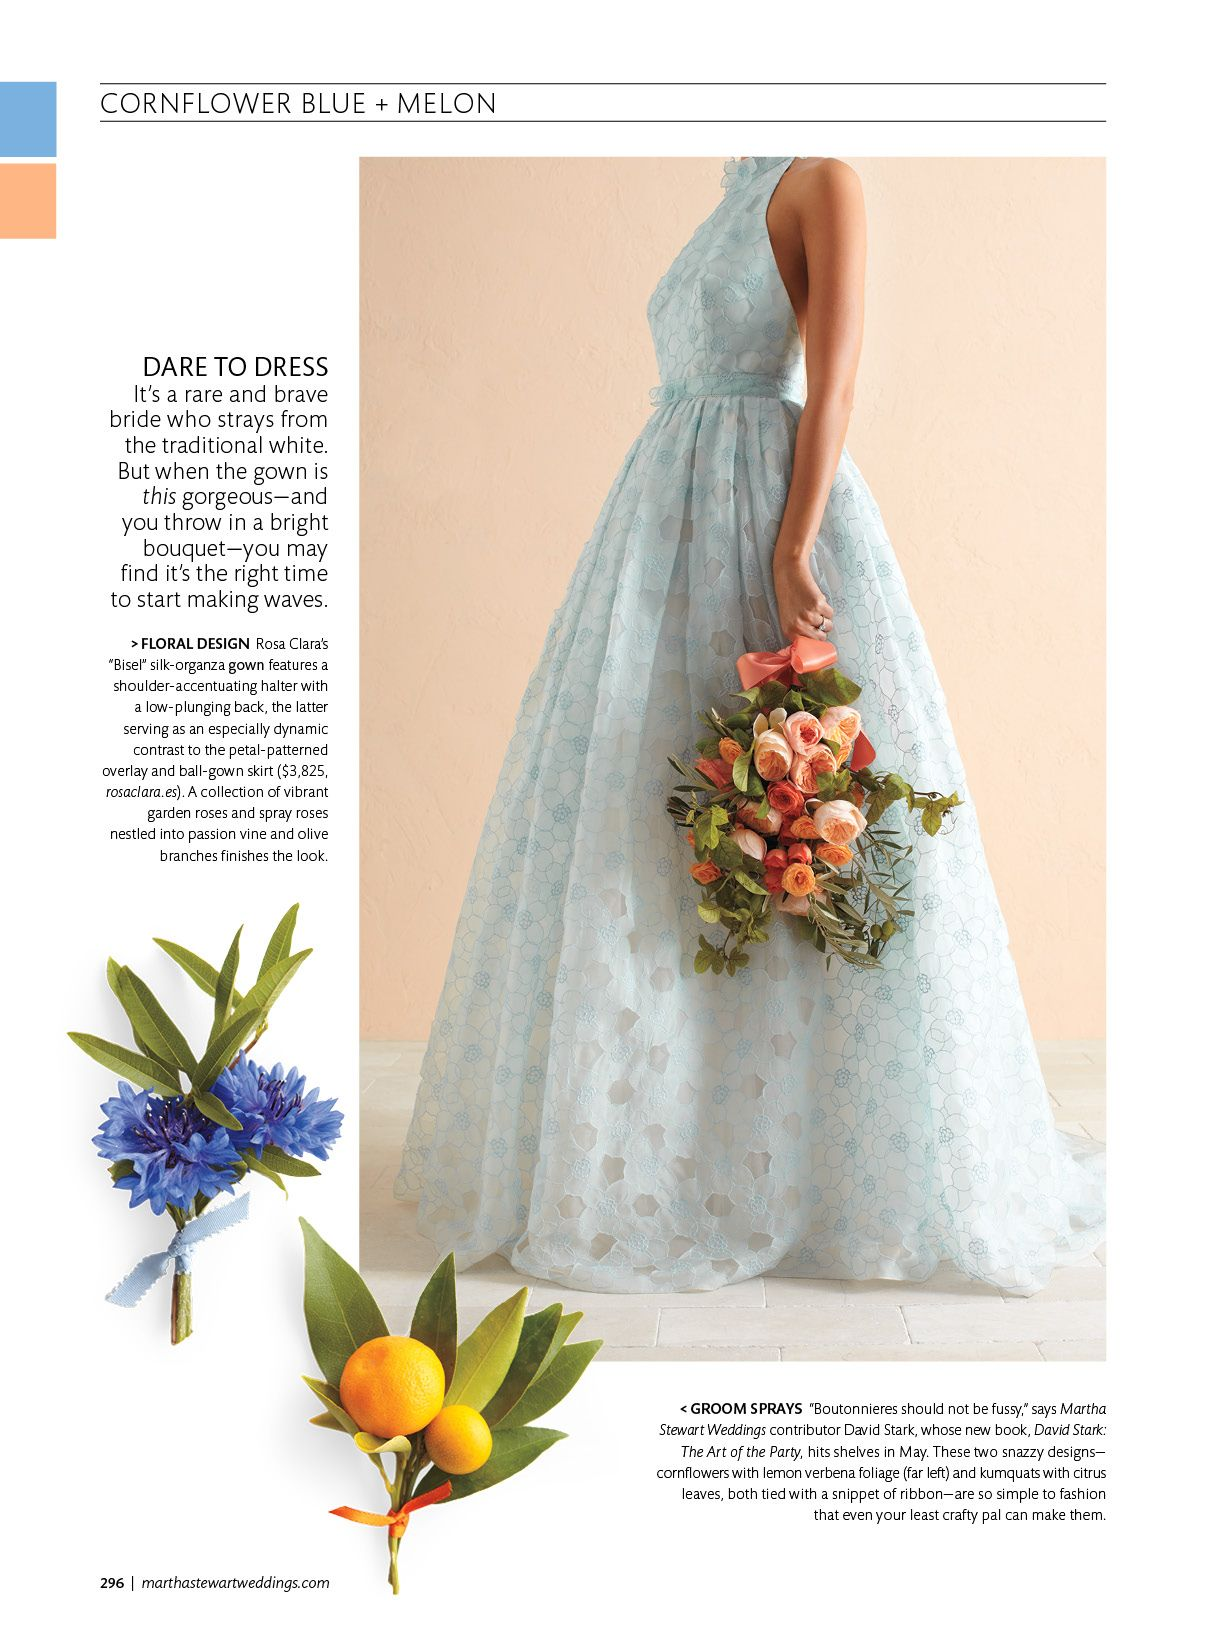 Pale blue silk organza wedding dress by rosa clara featured in the